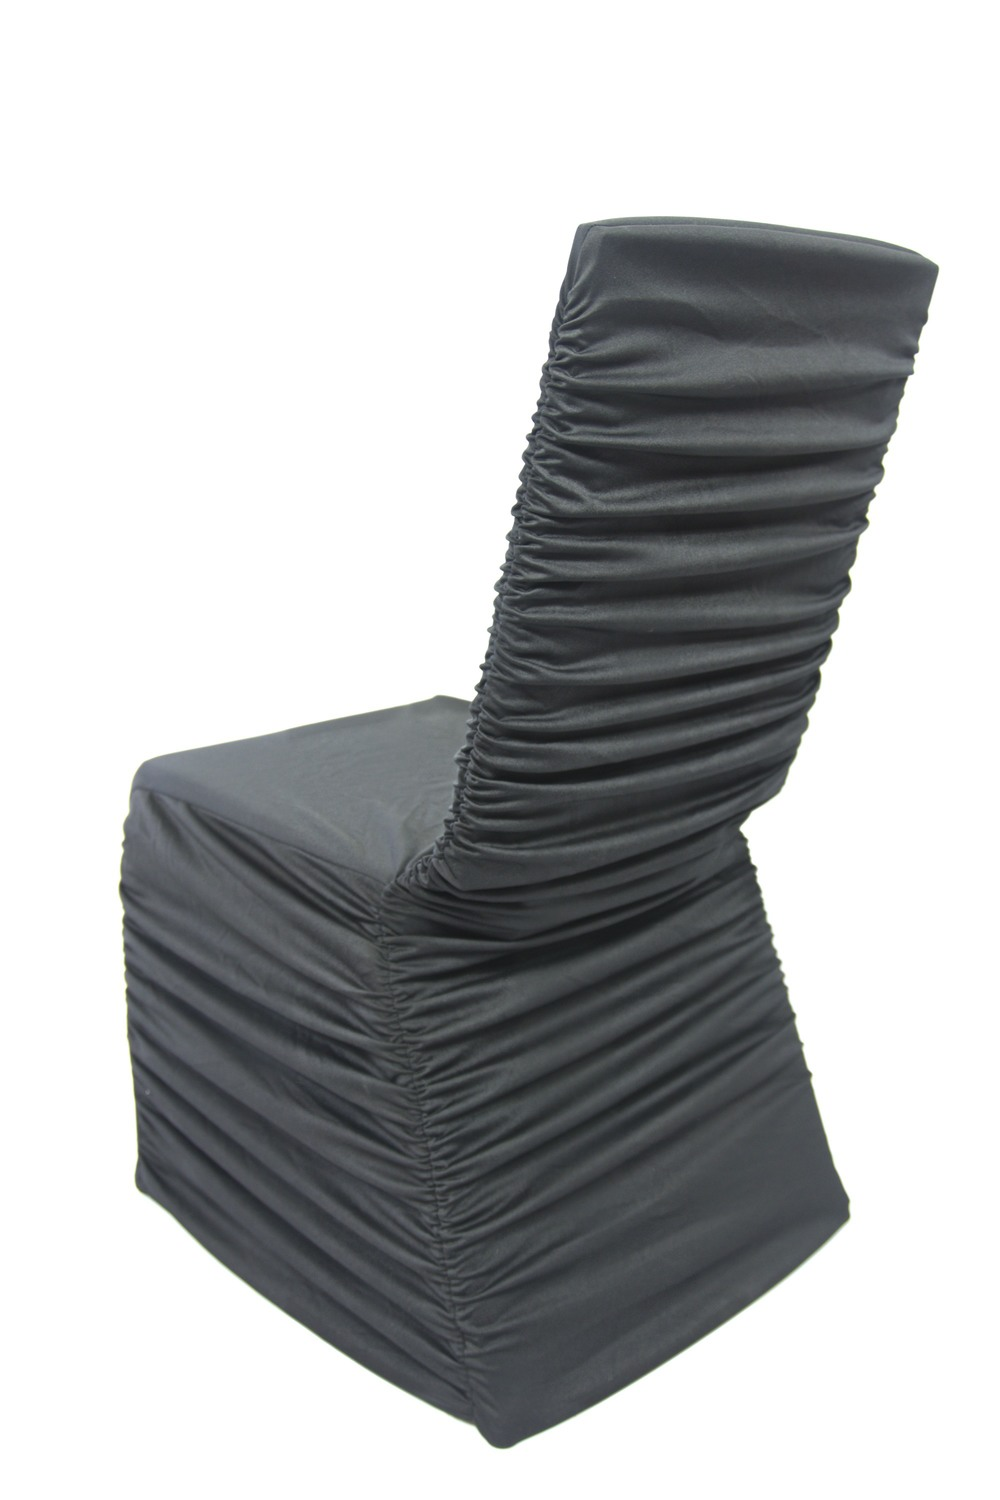 BLACK CHAIR COVER.jpg